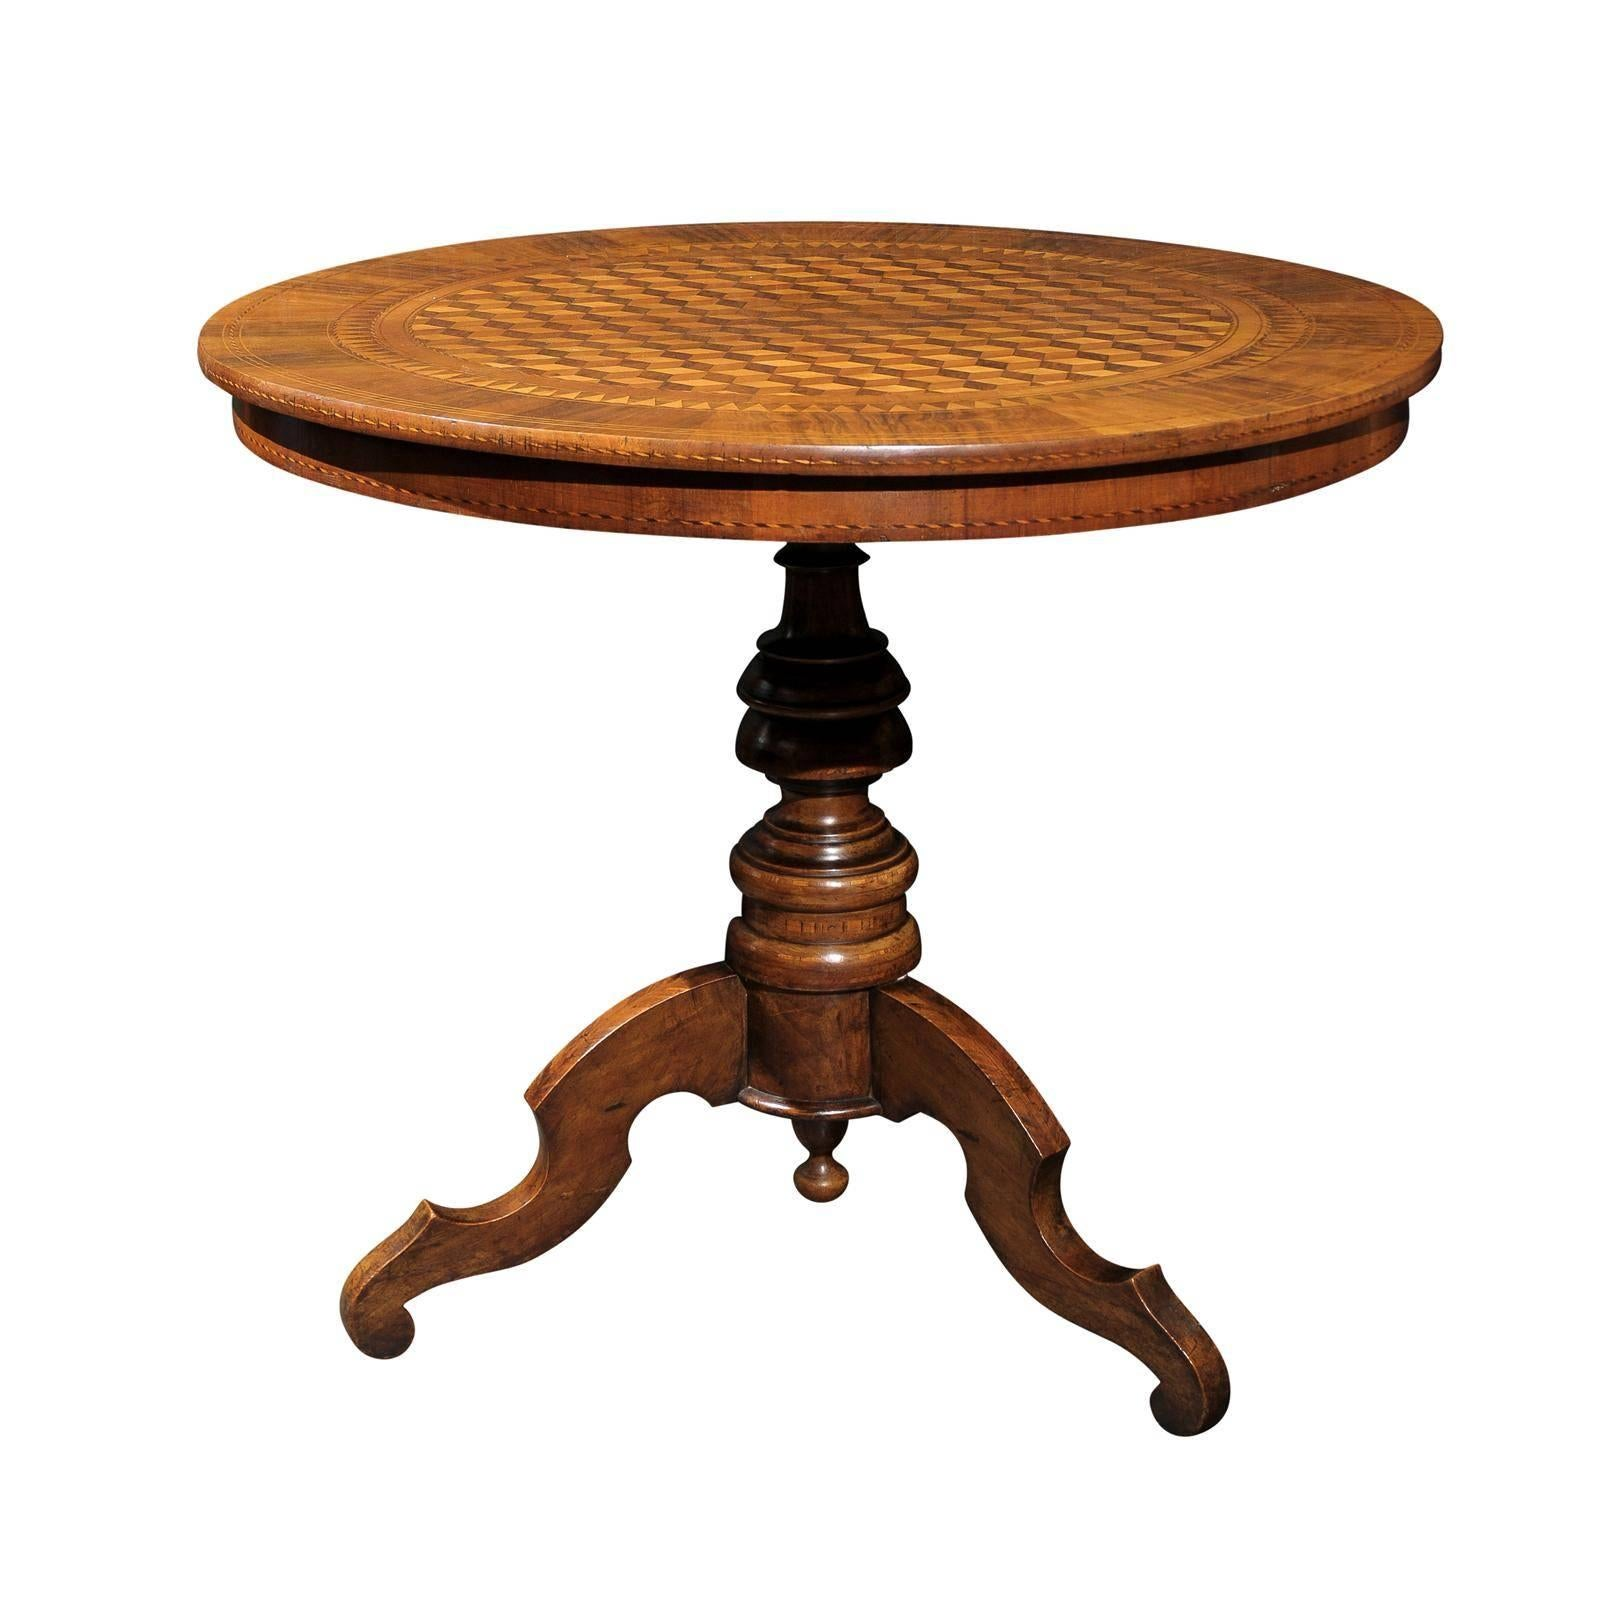 Italian Late 19th Century Round Pedestal Side Table with Cube Parquetry Inlay